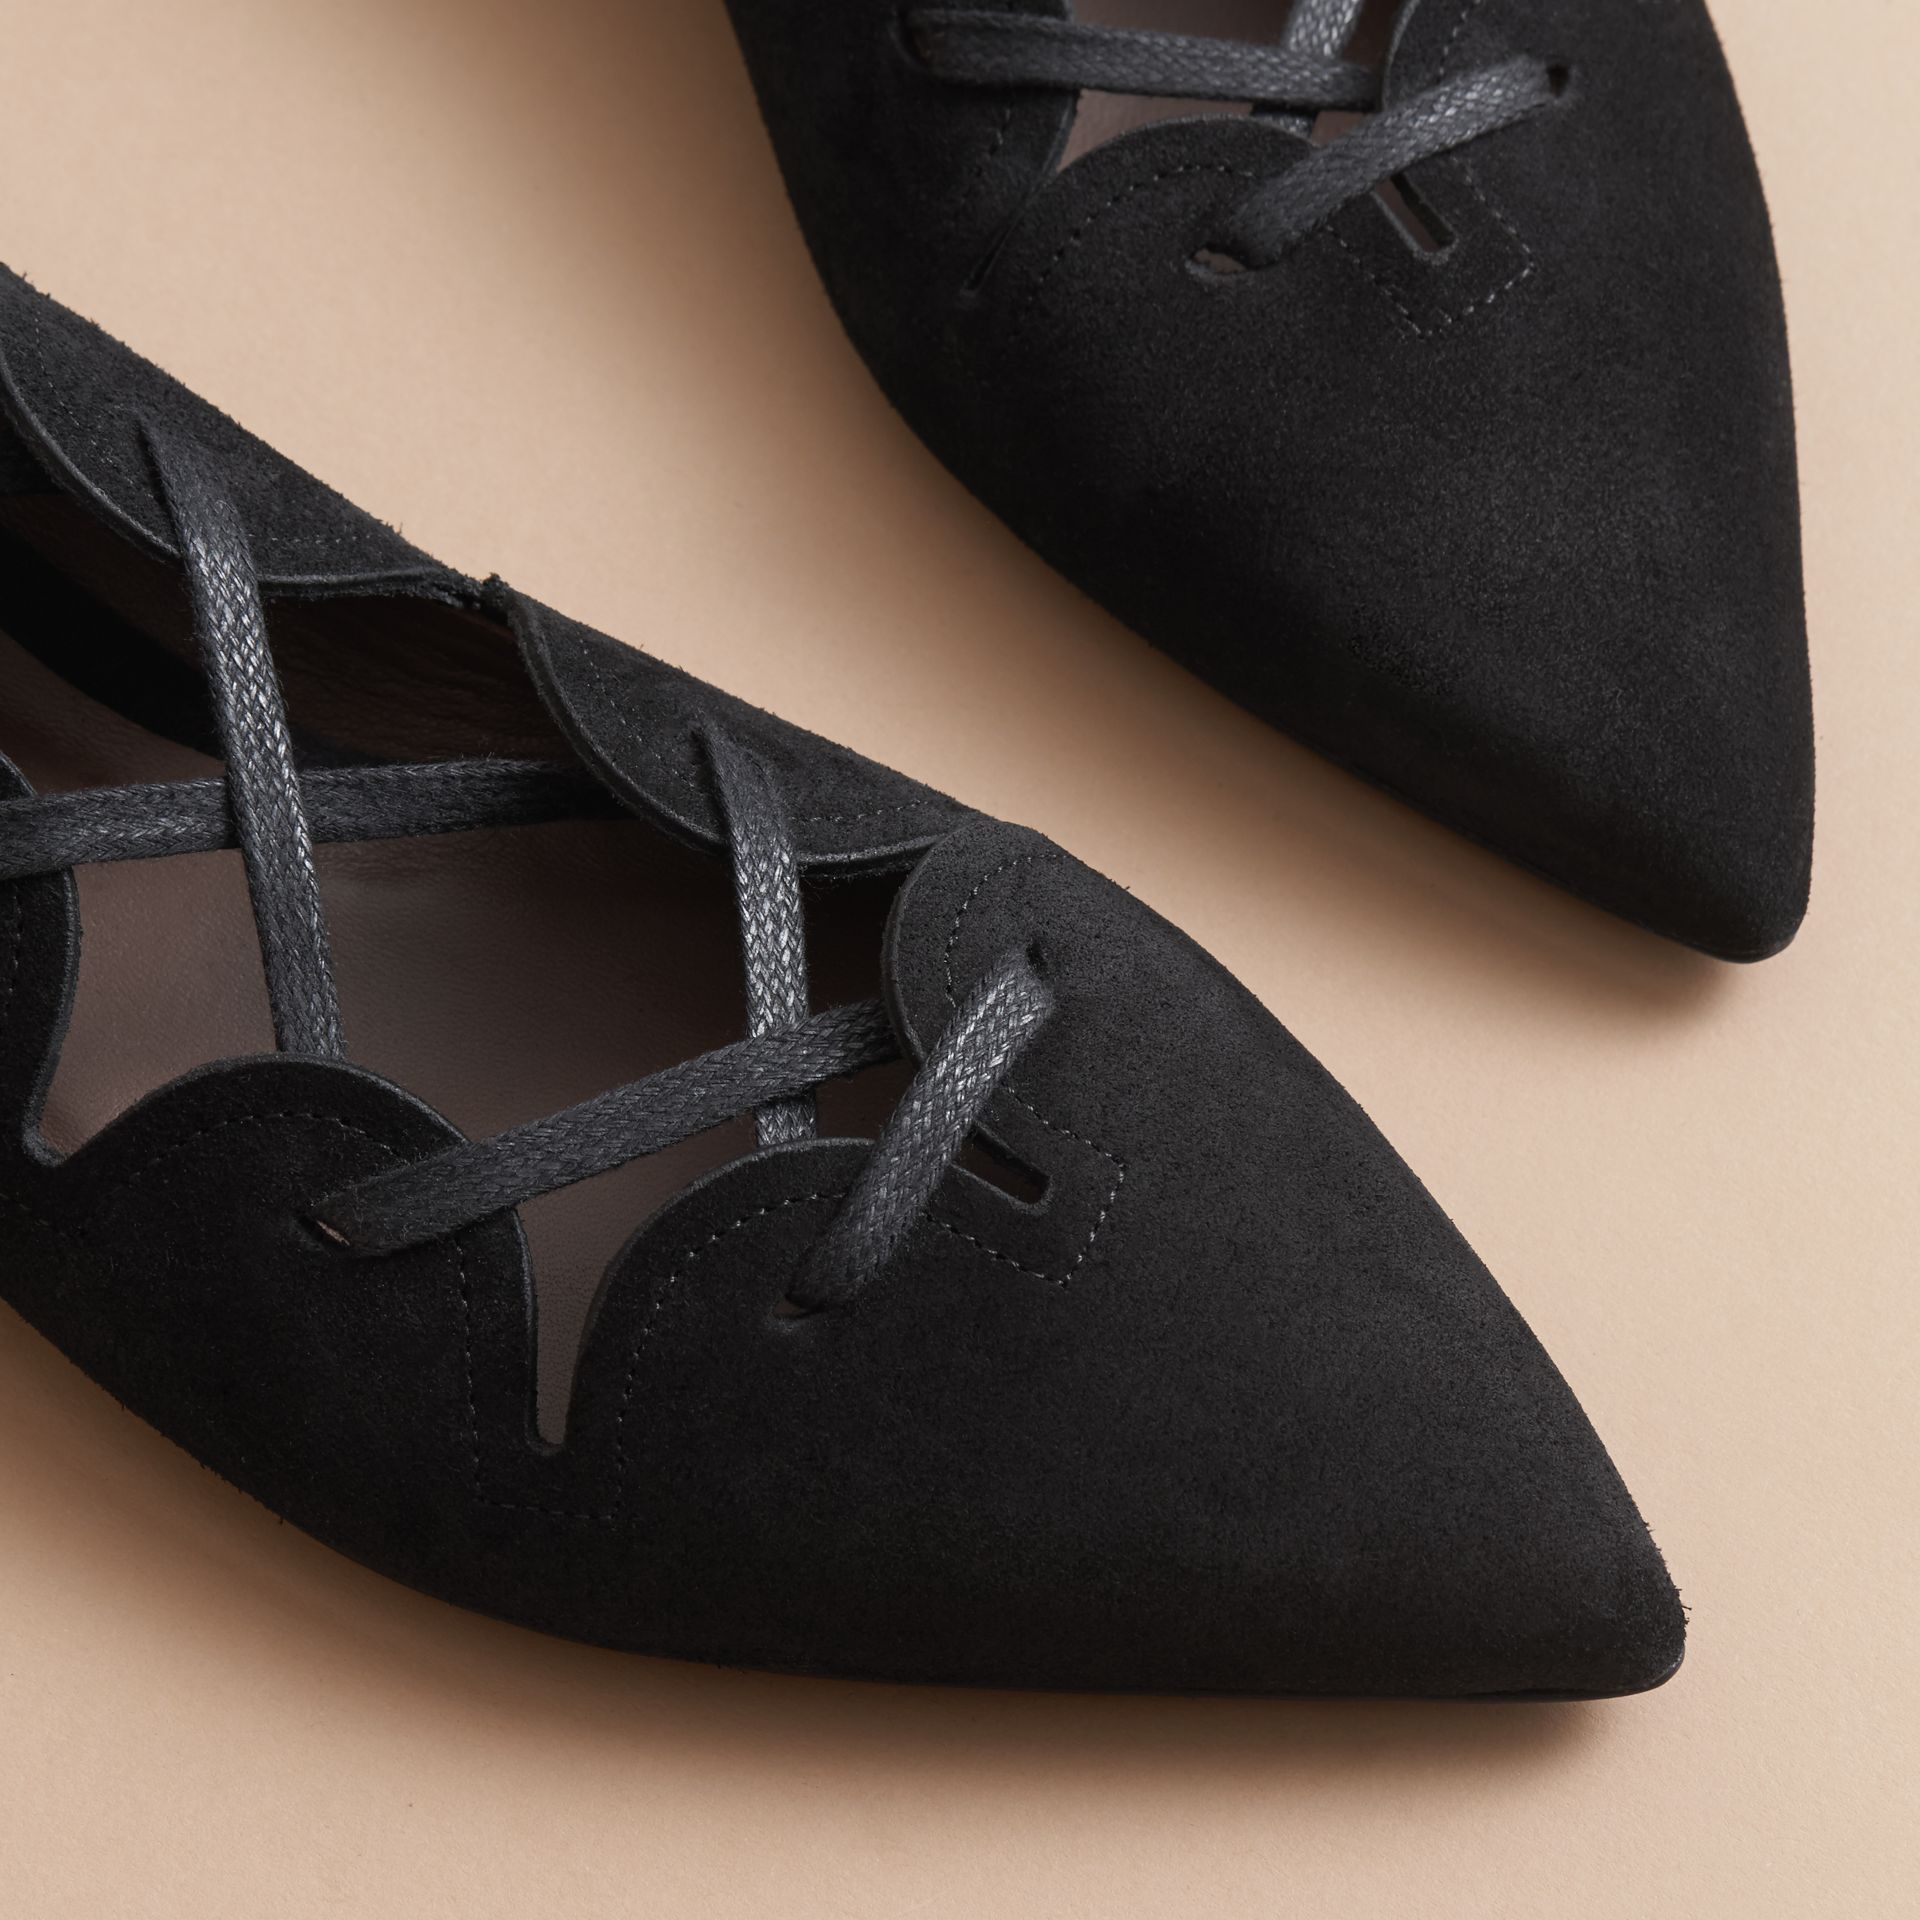 Scalloped Suede Lace-up Ballerinas in Black - Women | Burberry Singapore - gallery image 5